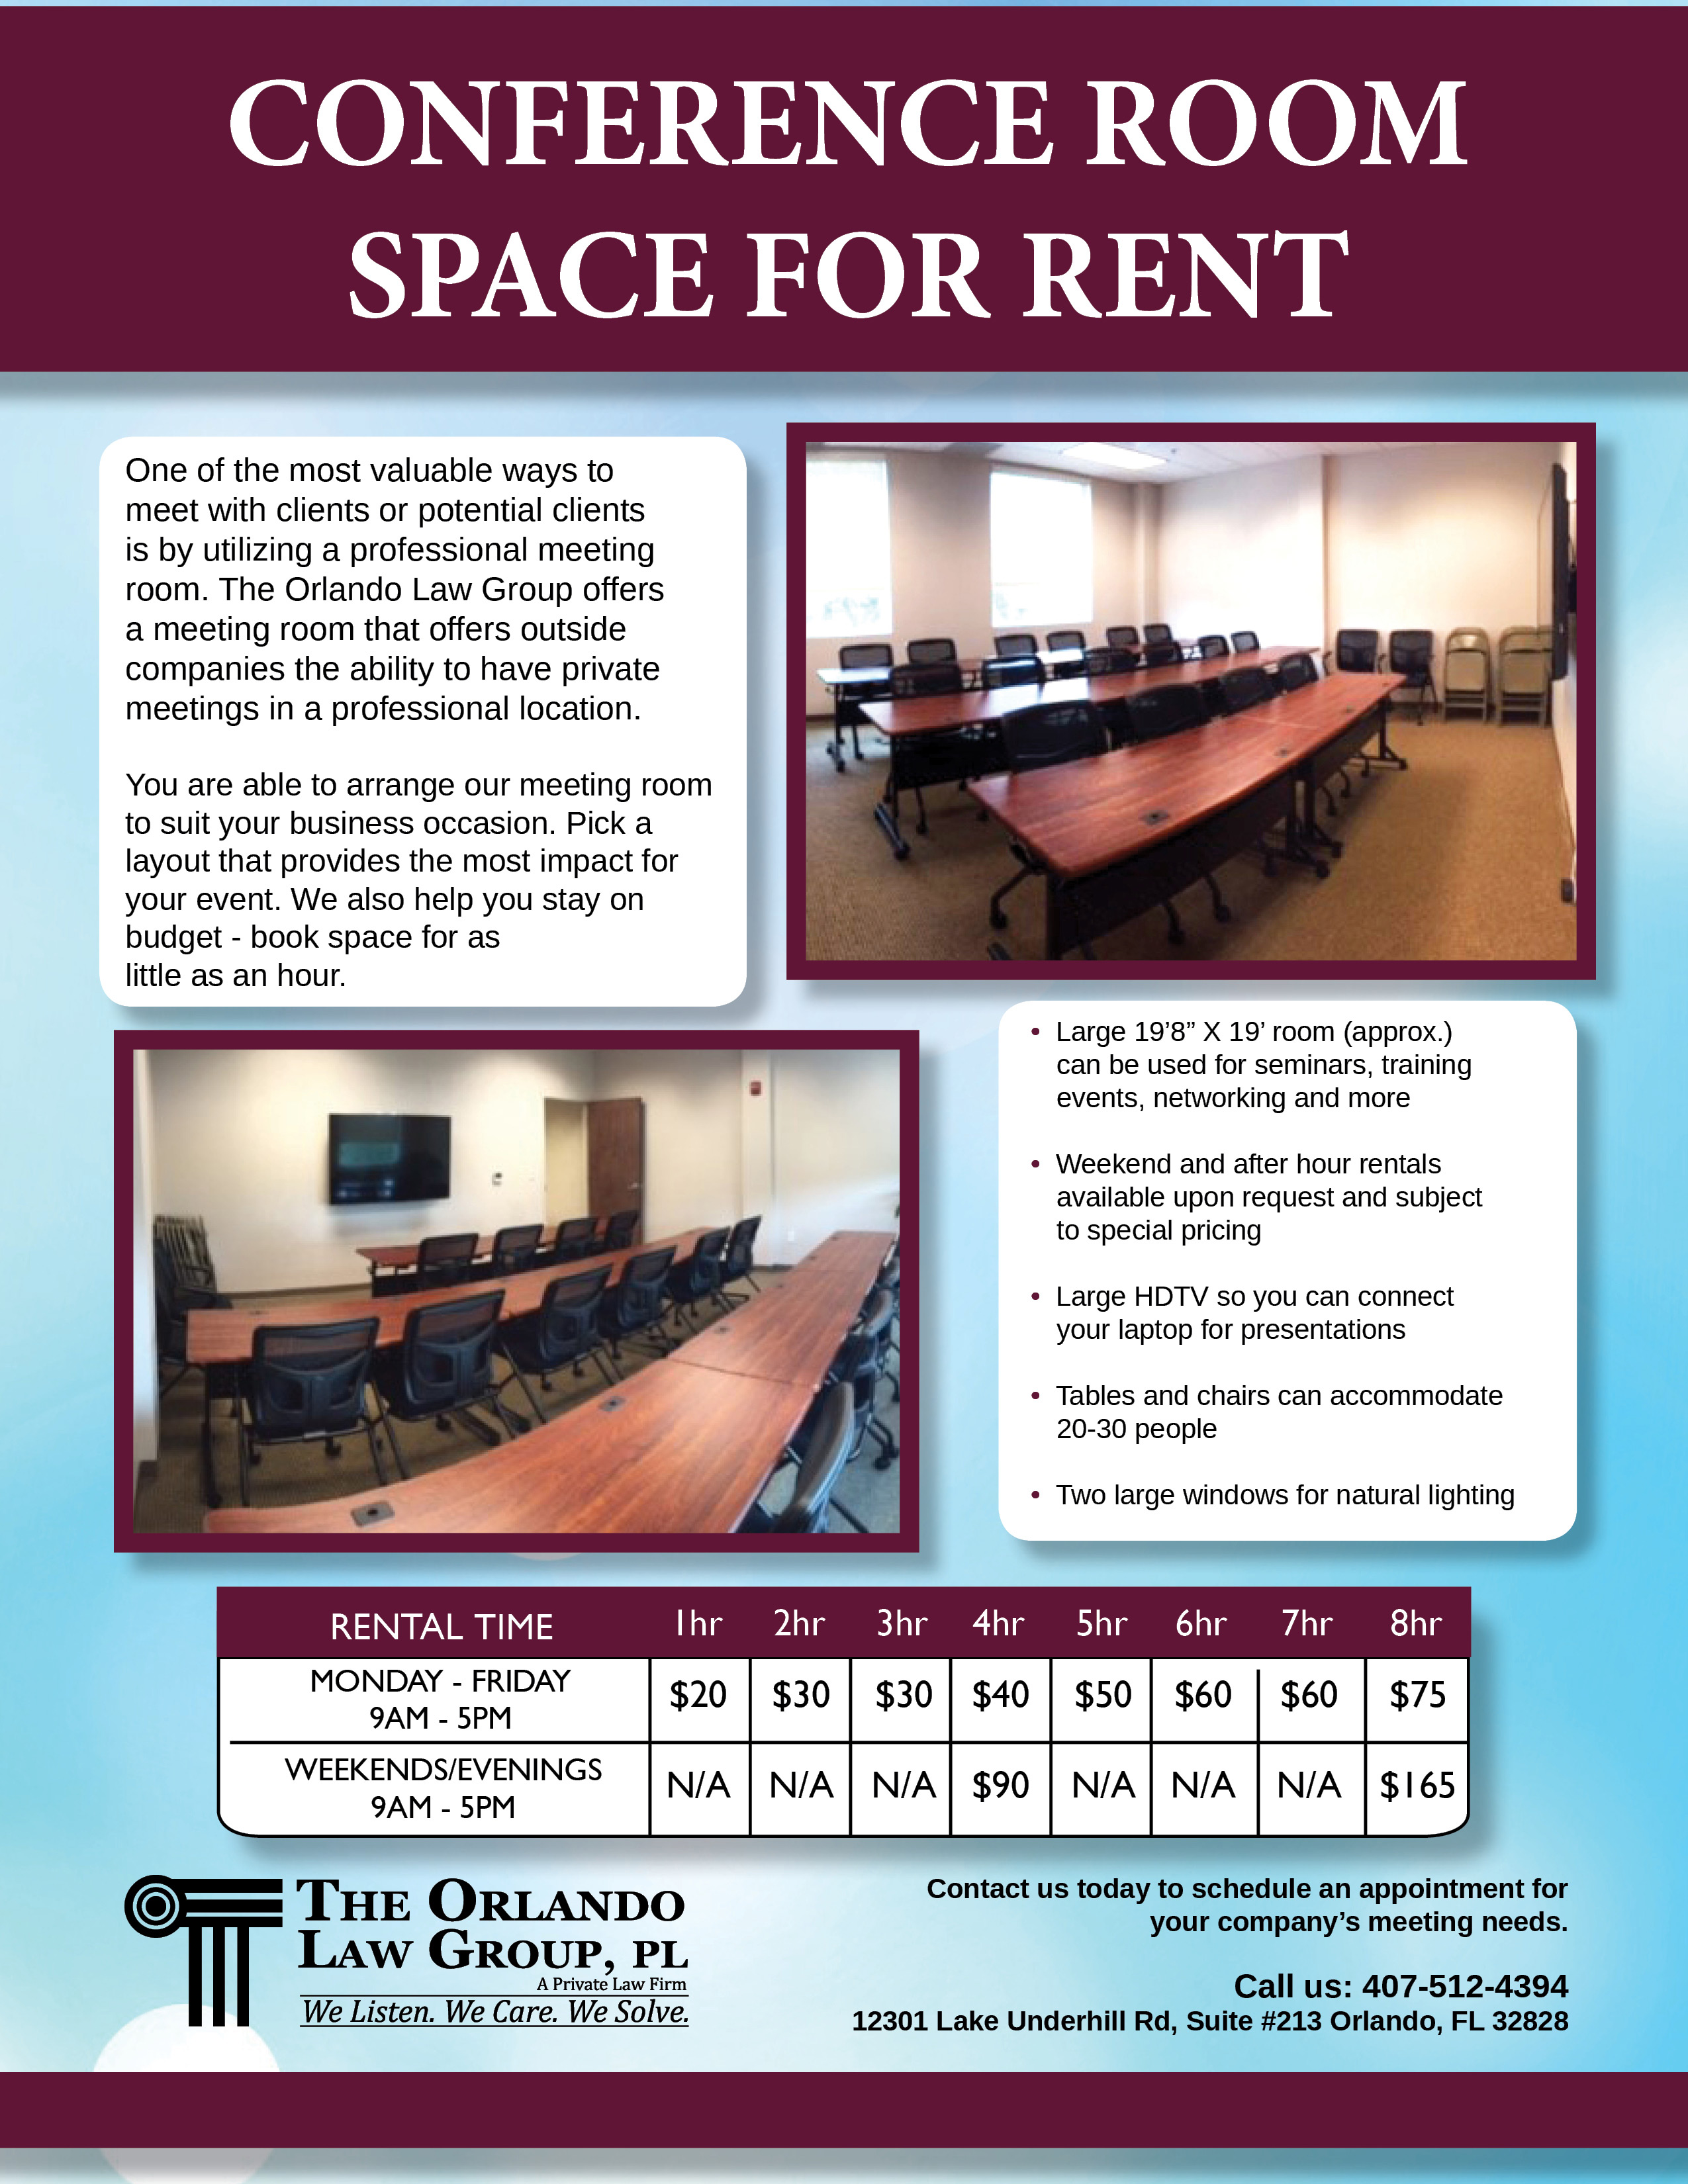 Conference Room Rentals The Orlando Law Group